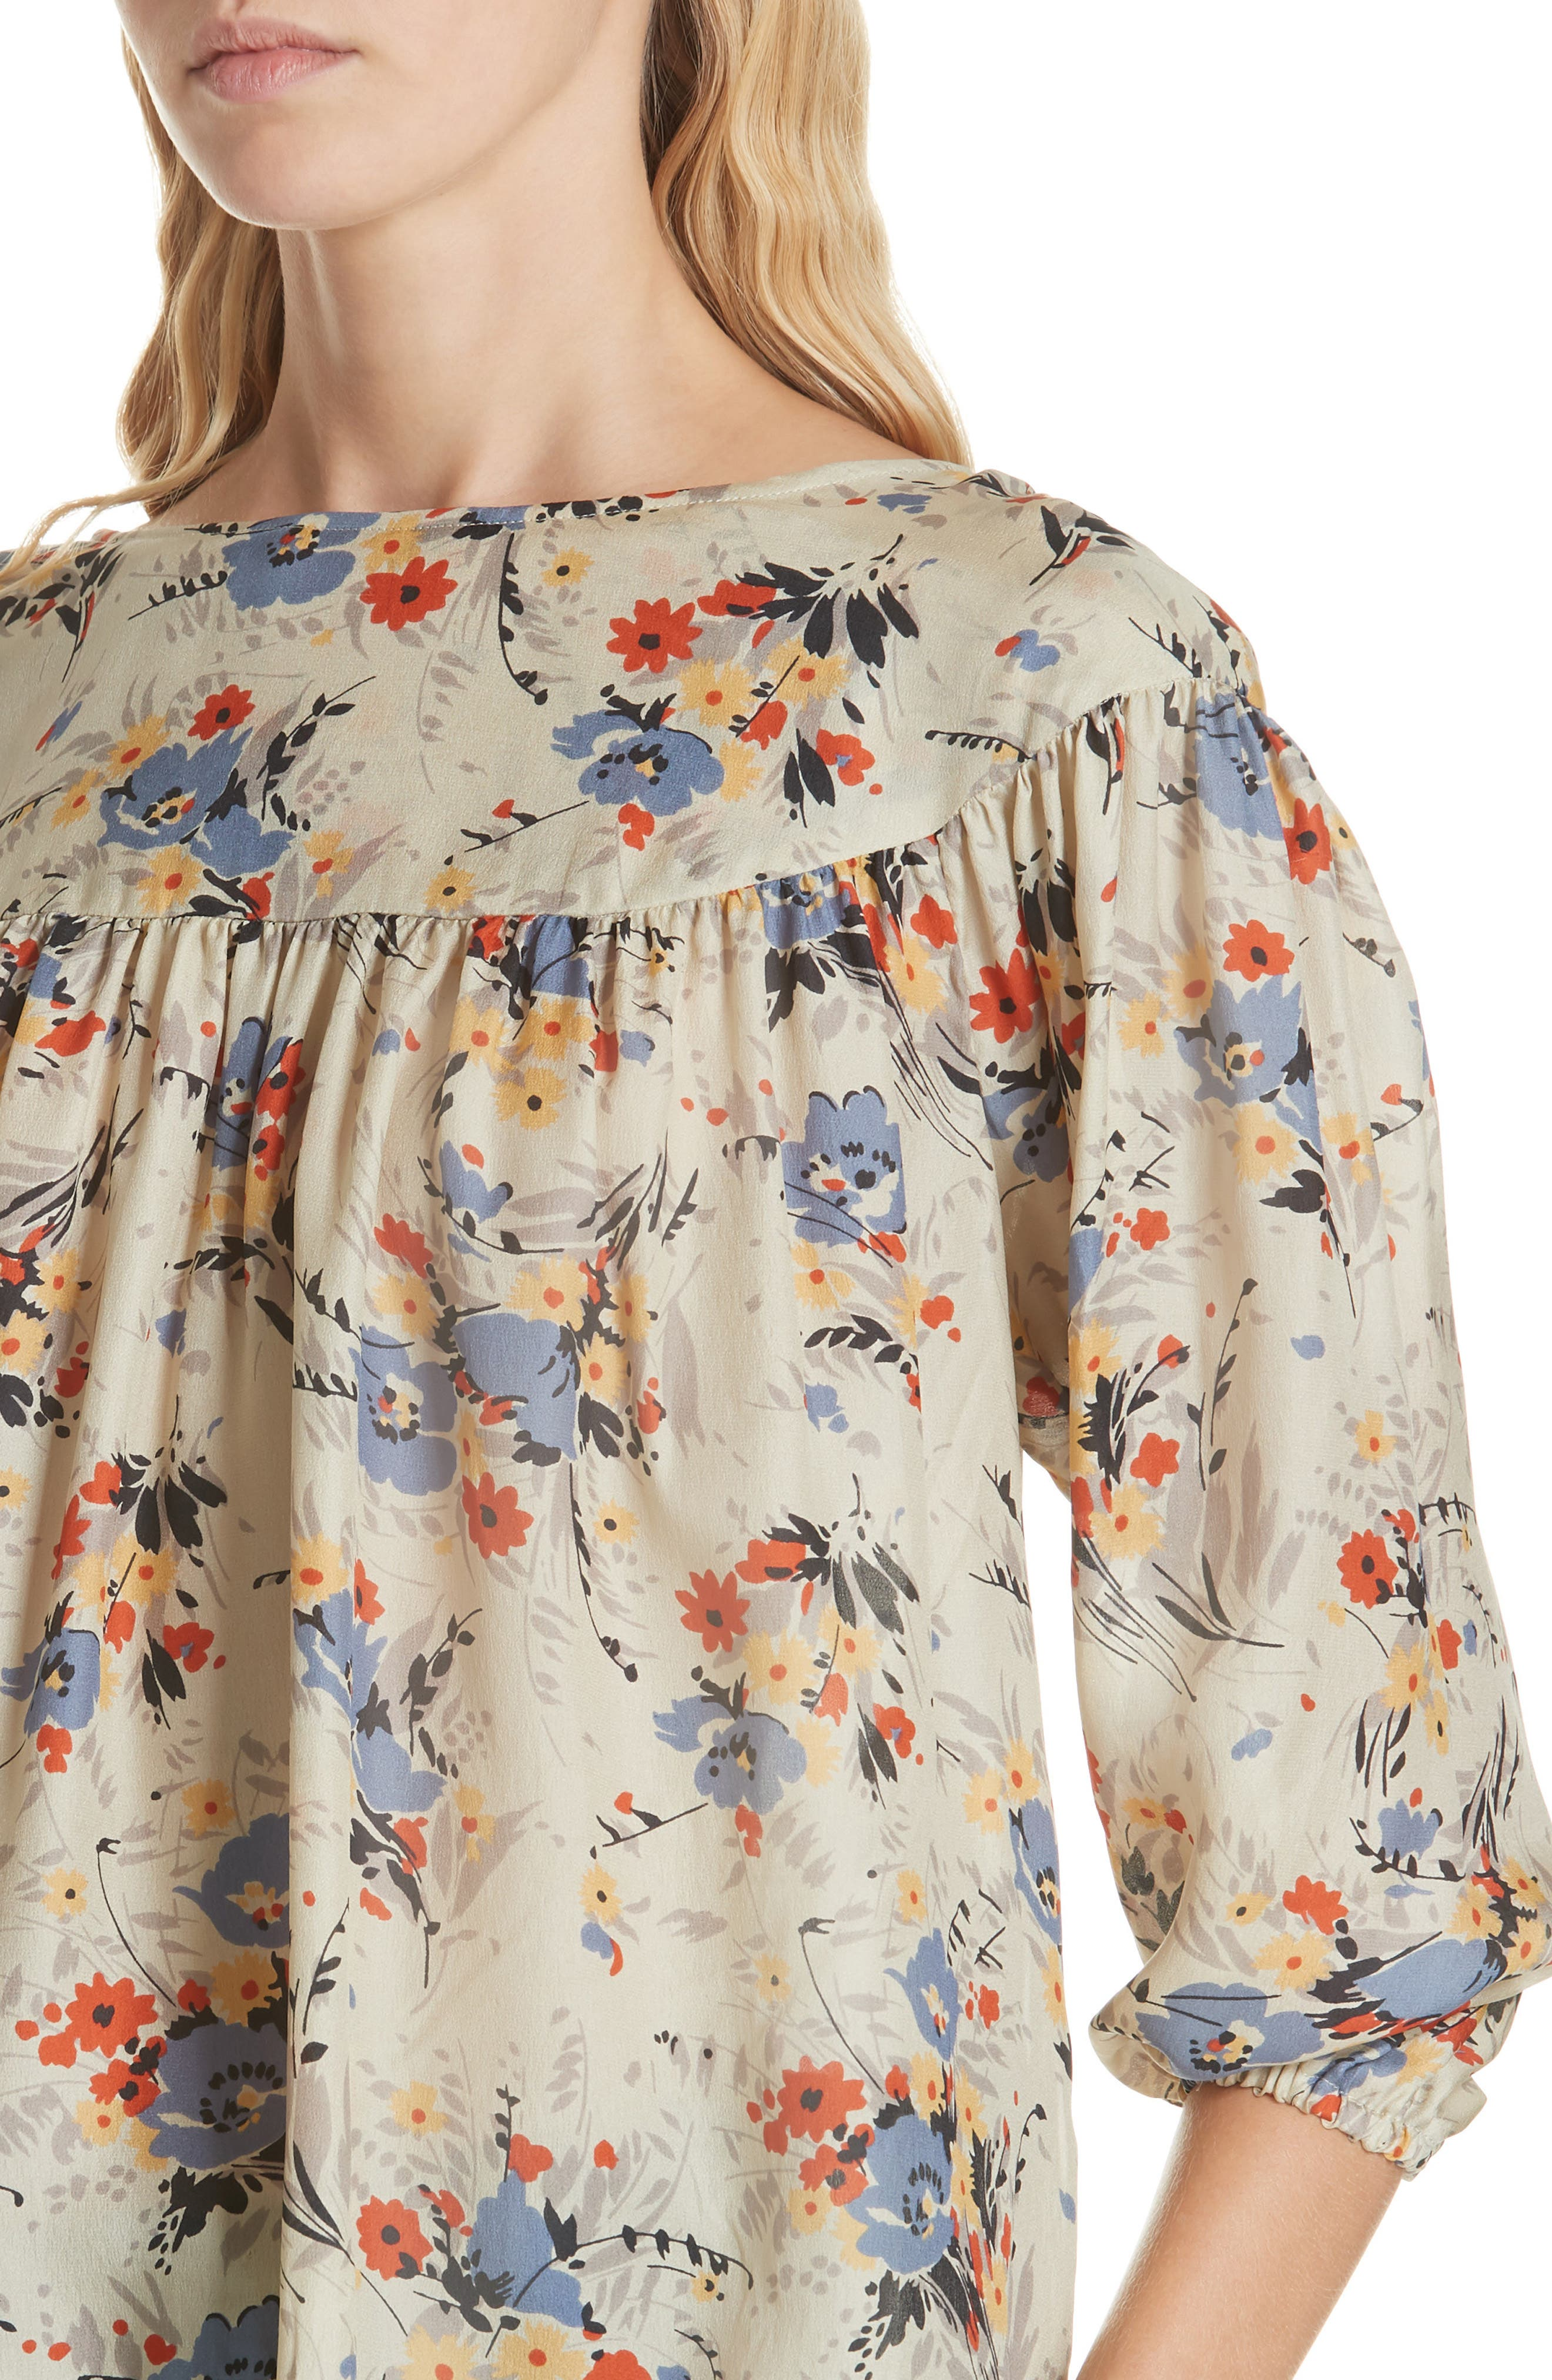 Duskfall Silk Blouse,                             Alternate thumbnail 4, color,                             WOODLAND FLORAL